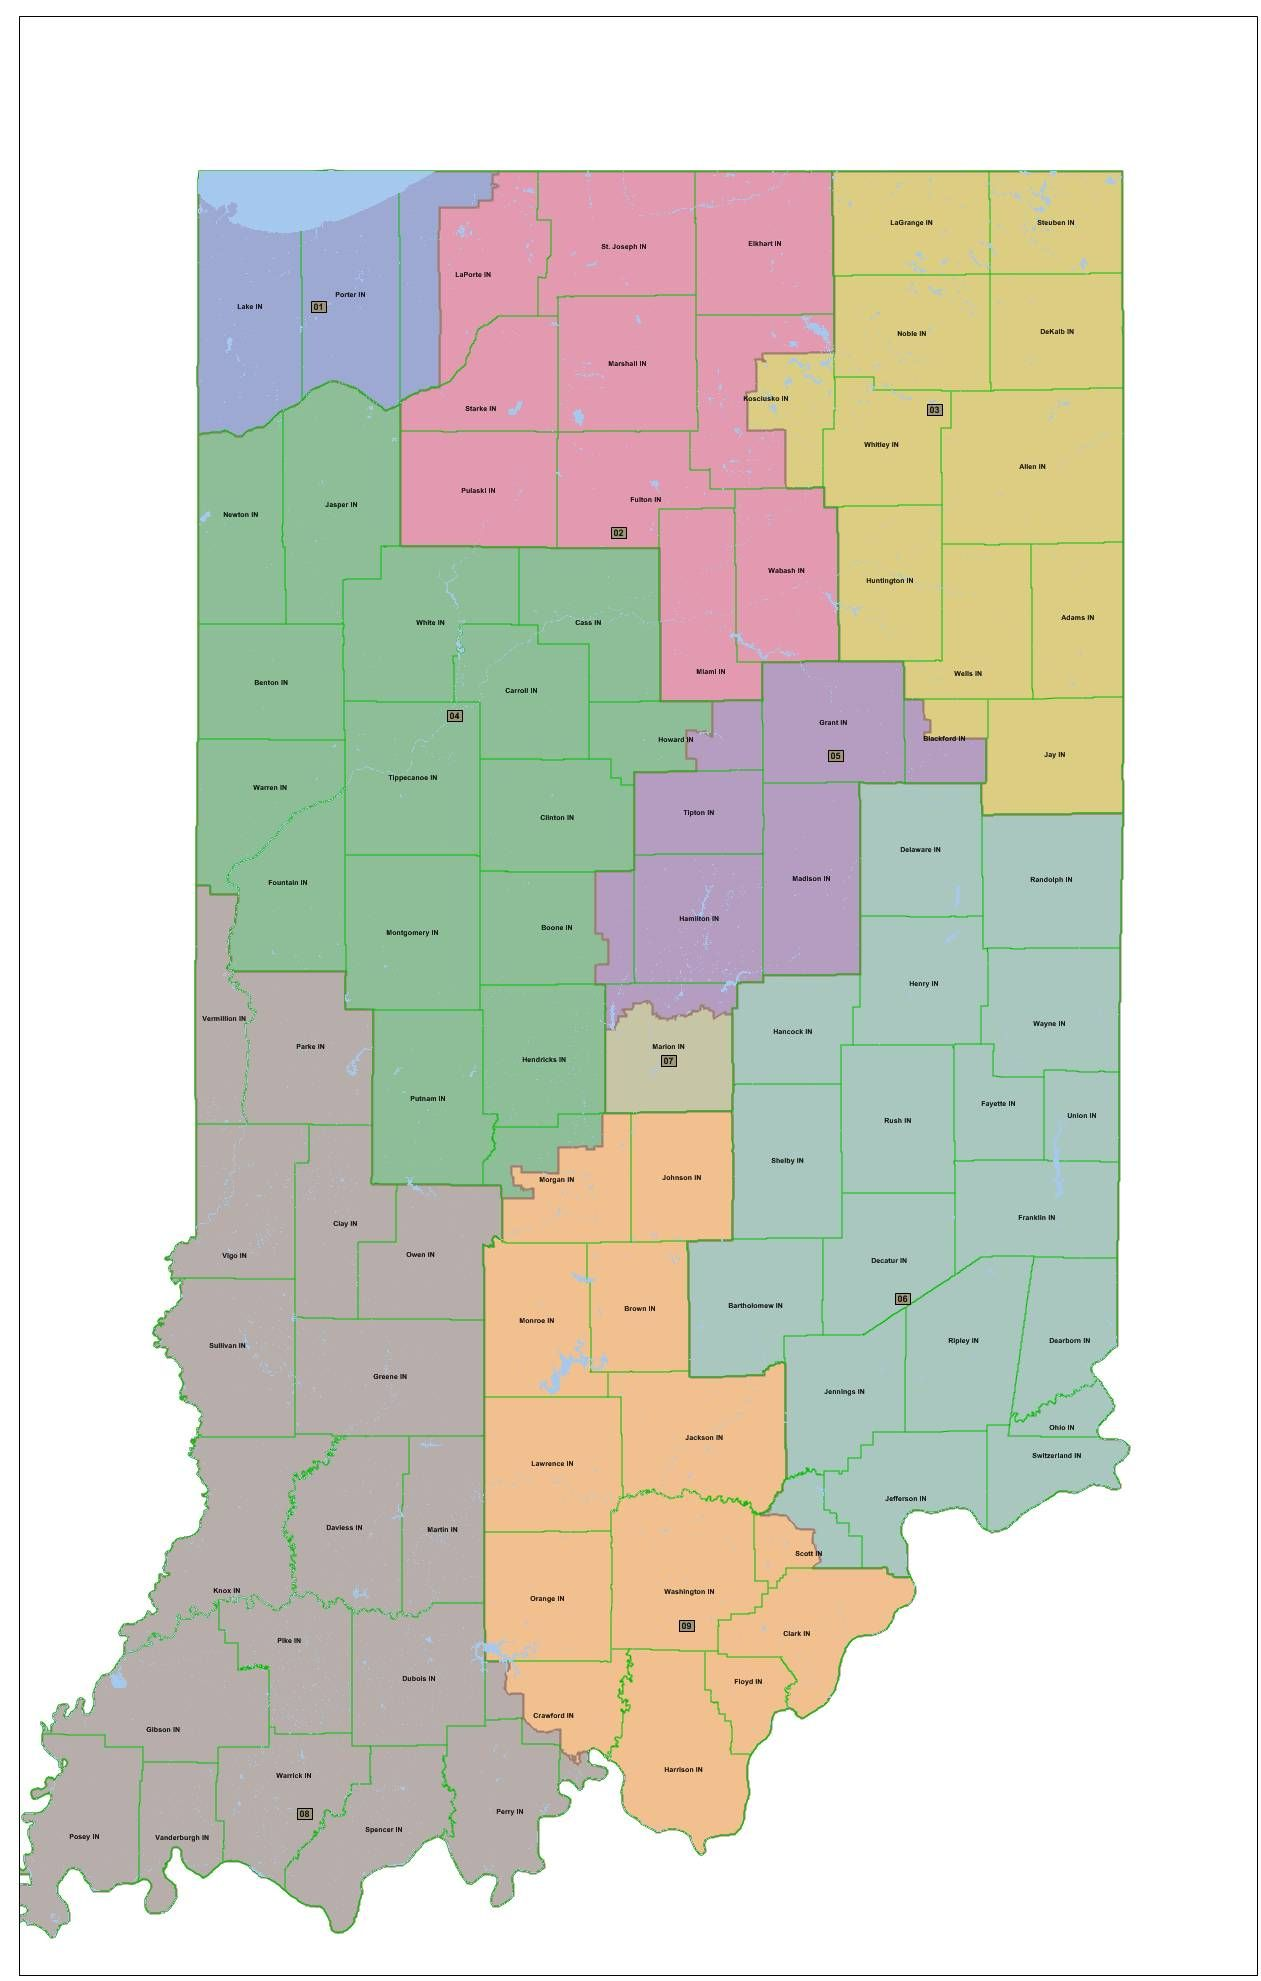 Indiana Redistricting Maps Presented  WKVI Information Center